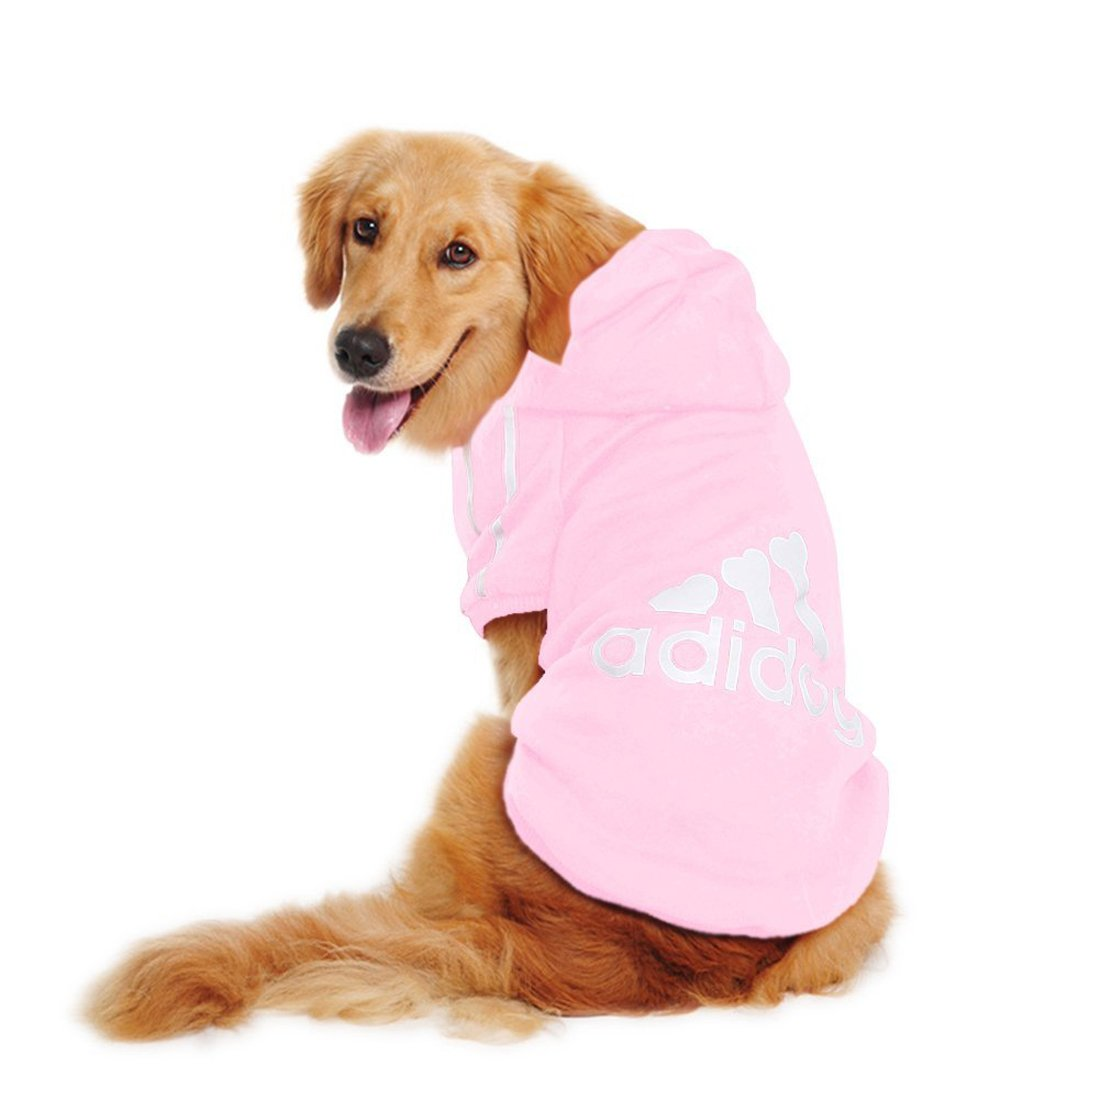 8f4b38ff27eb Aisuper Puppy Dogs Cats Pets Clothes Hoodie Golden Retriever French Bulldog  Poodle Pug Sports Fashion Cool Plain Warm Autumn Winter T Shirts Jackets  Costume ...